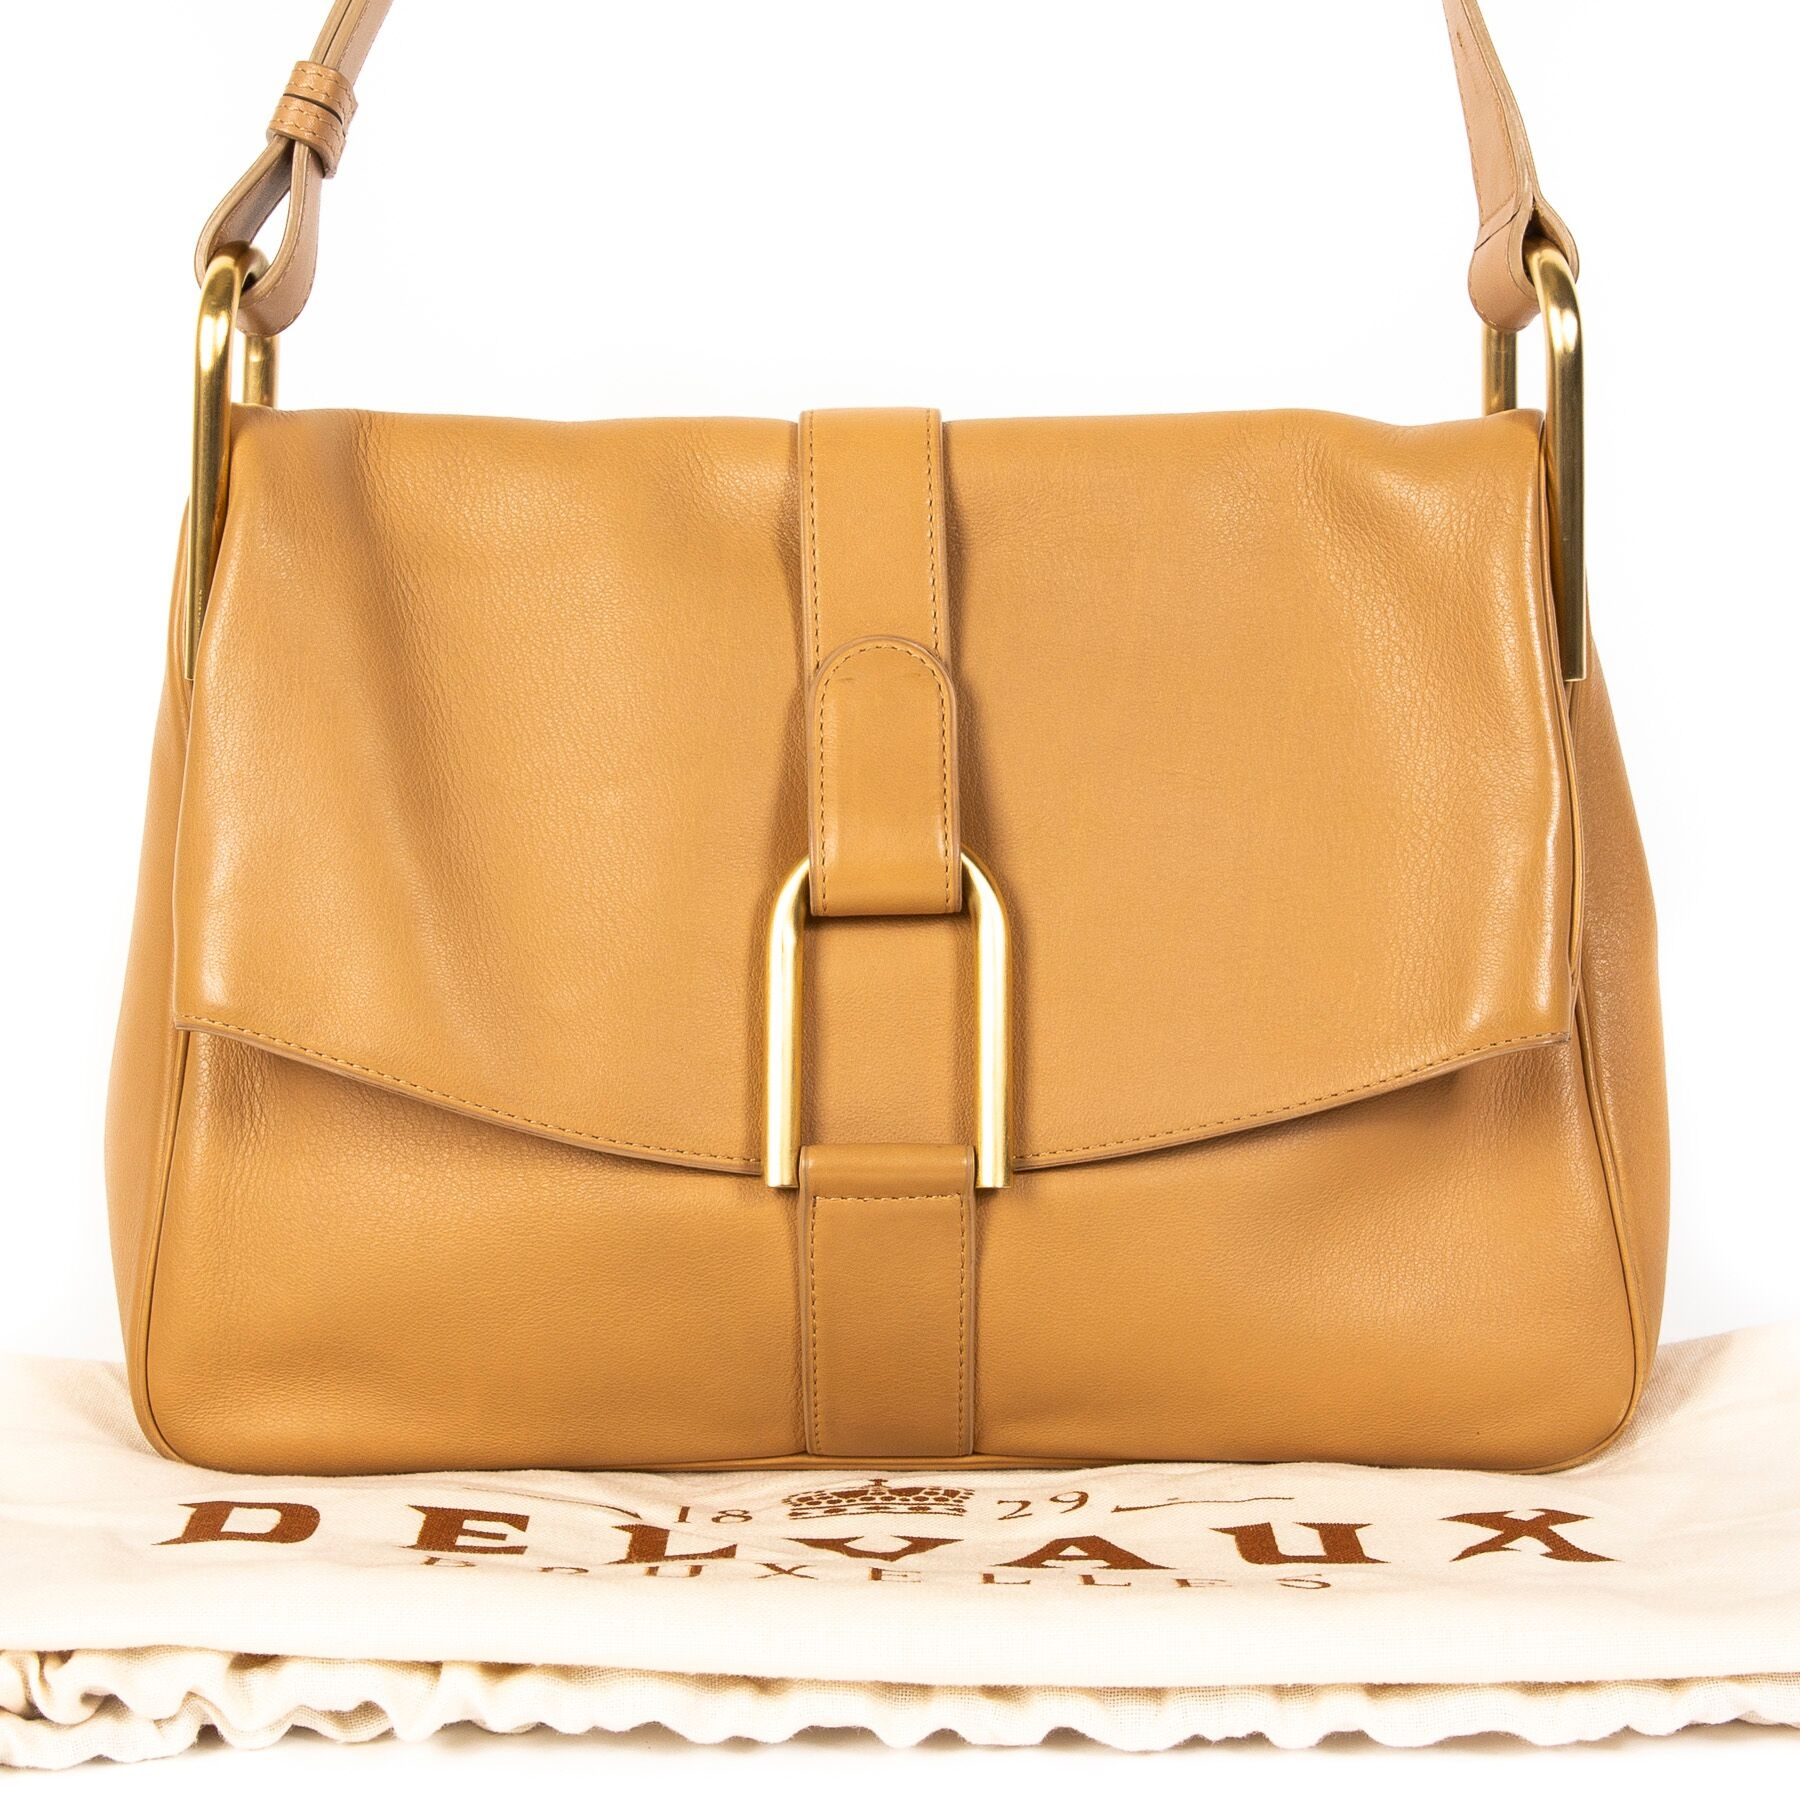 Buy authentic secondhand Delvaux Givry at the right price at LabelLOV vintage webshop.